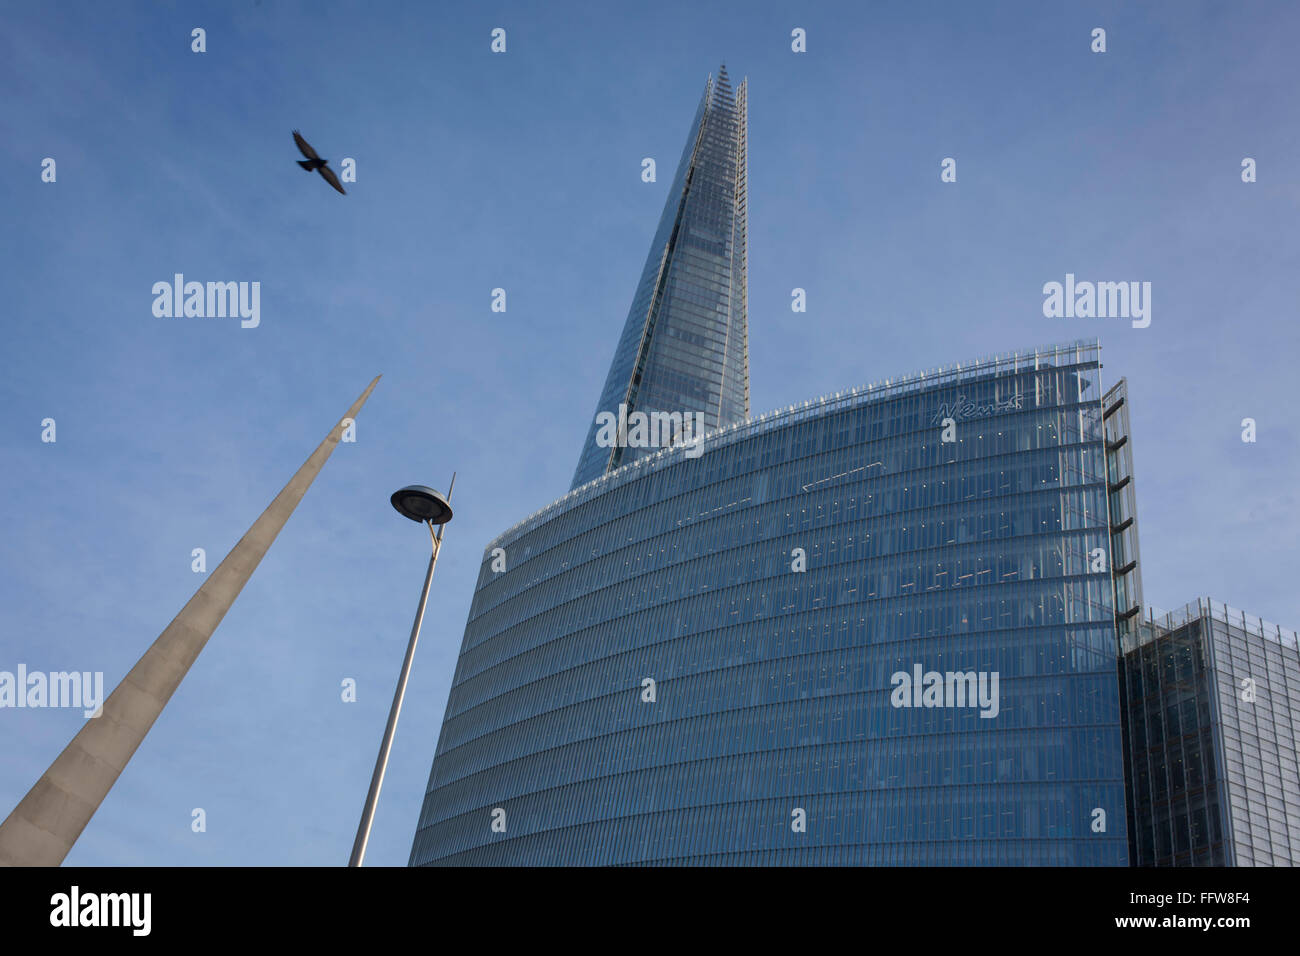 the-shard-rises-high-above-the-news-buil